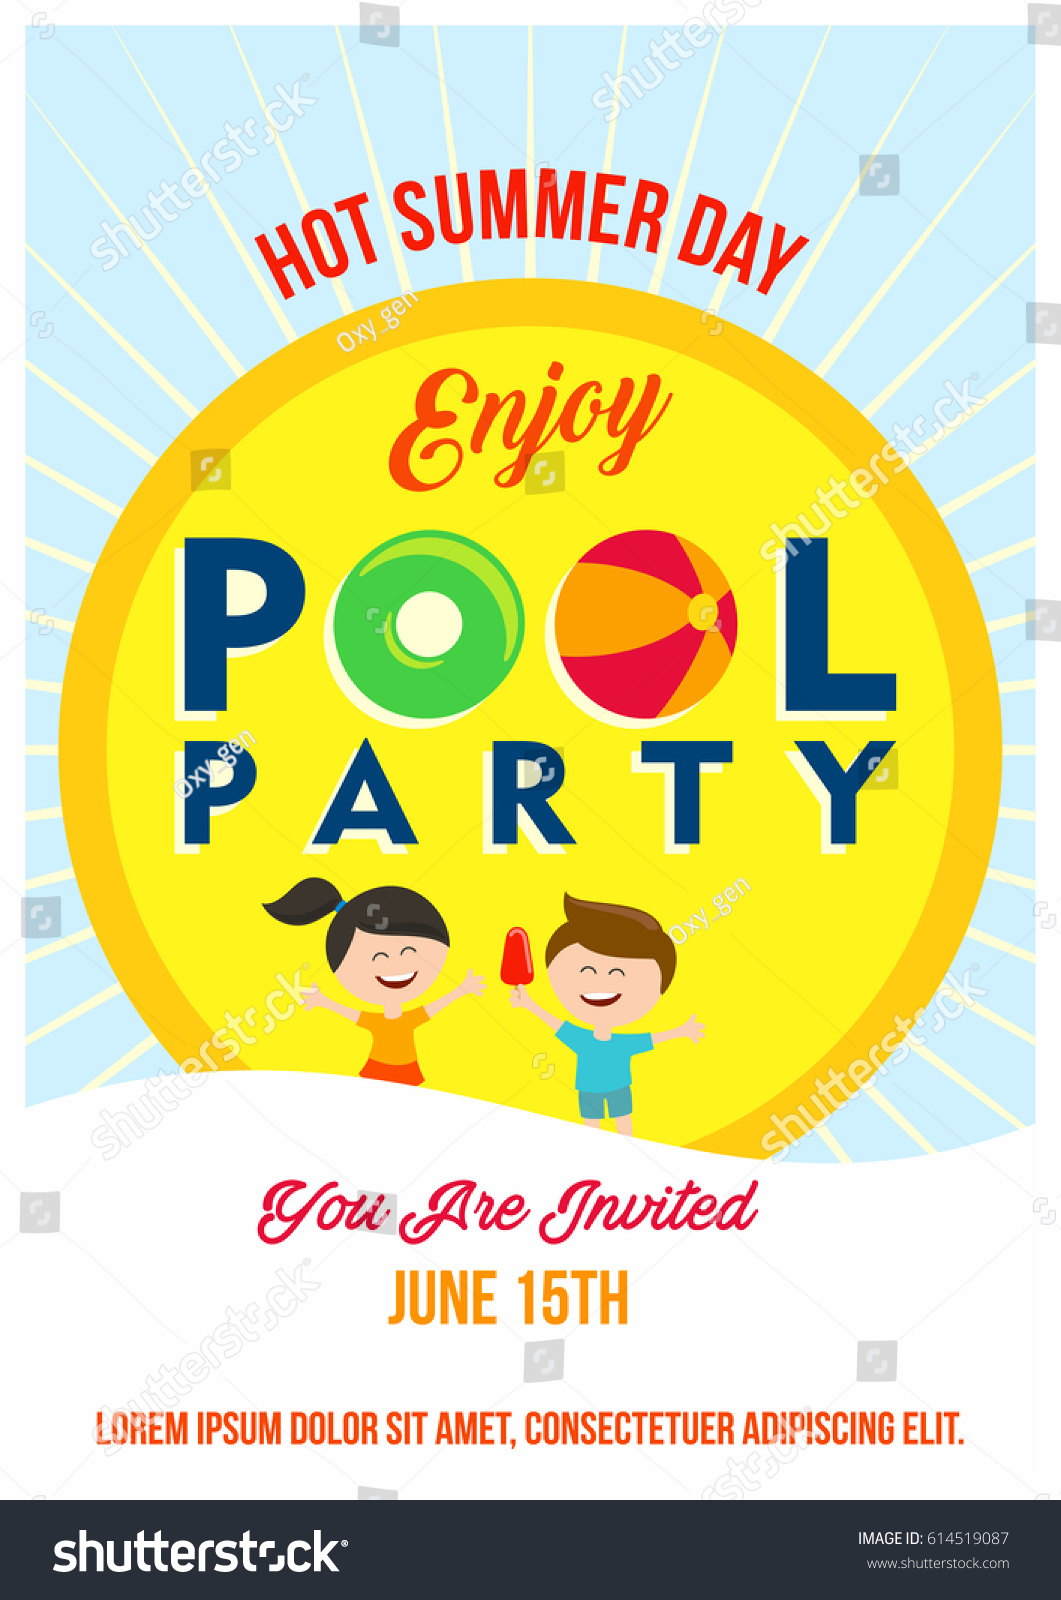 Pool Party Invitation Template Kids Summertime Vector – Pool Party Invite Template